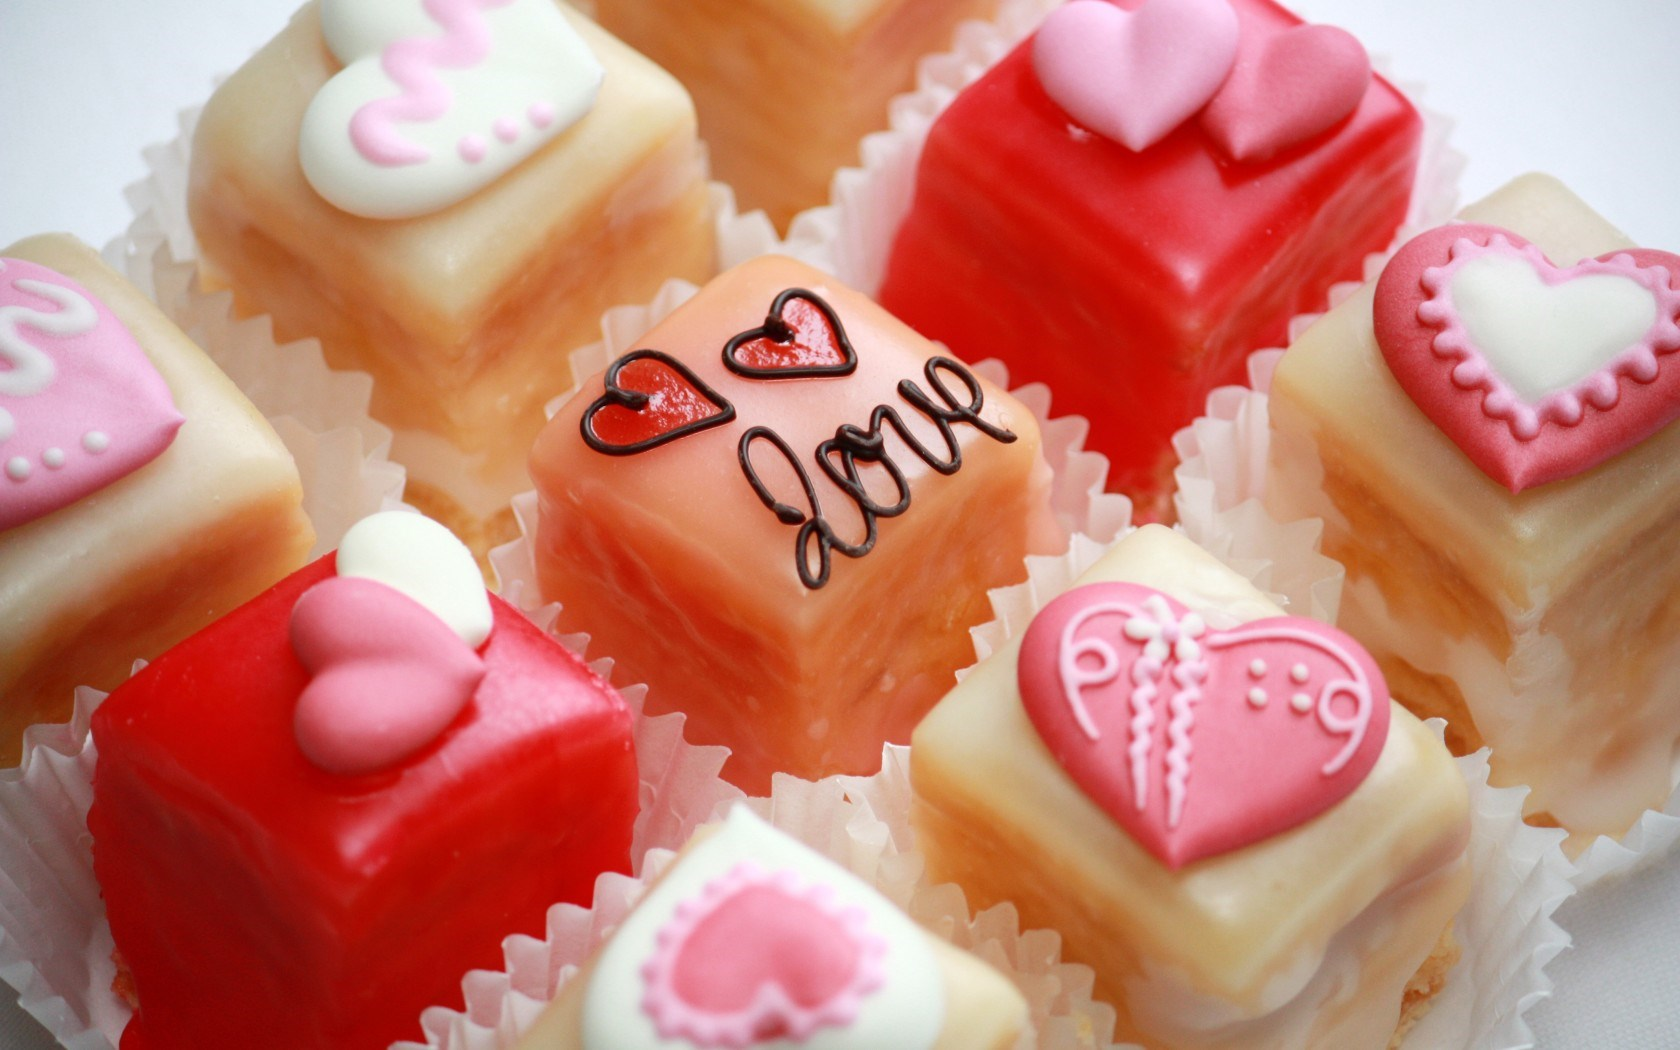 Candy Hearts Sweets Dessert Love